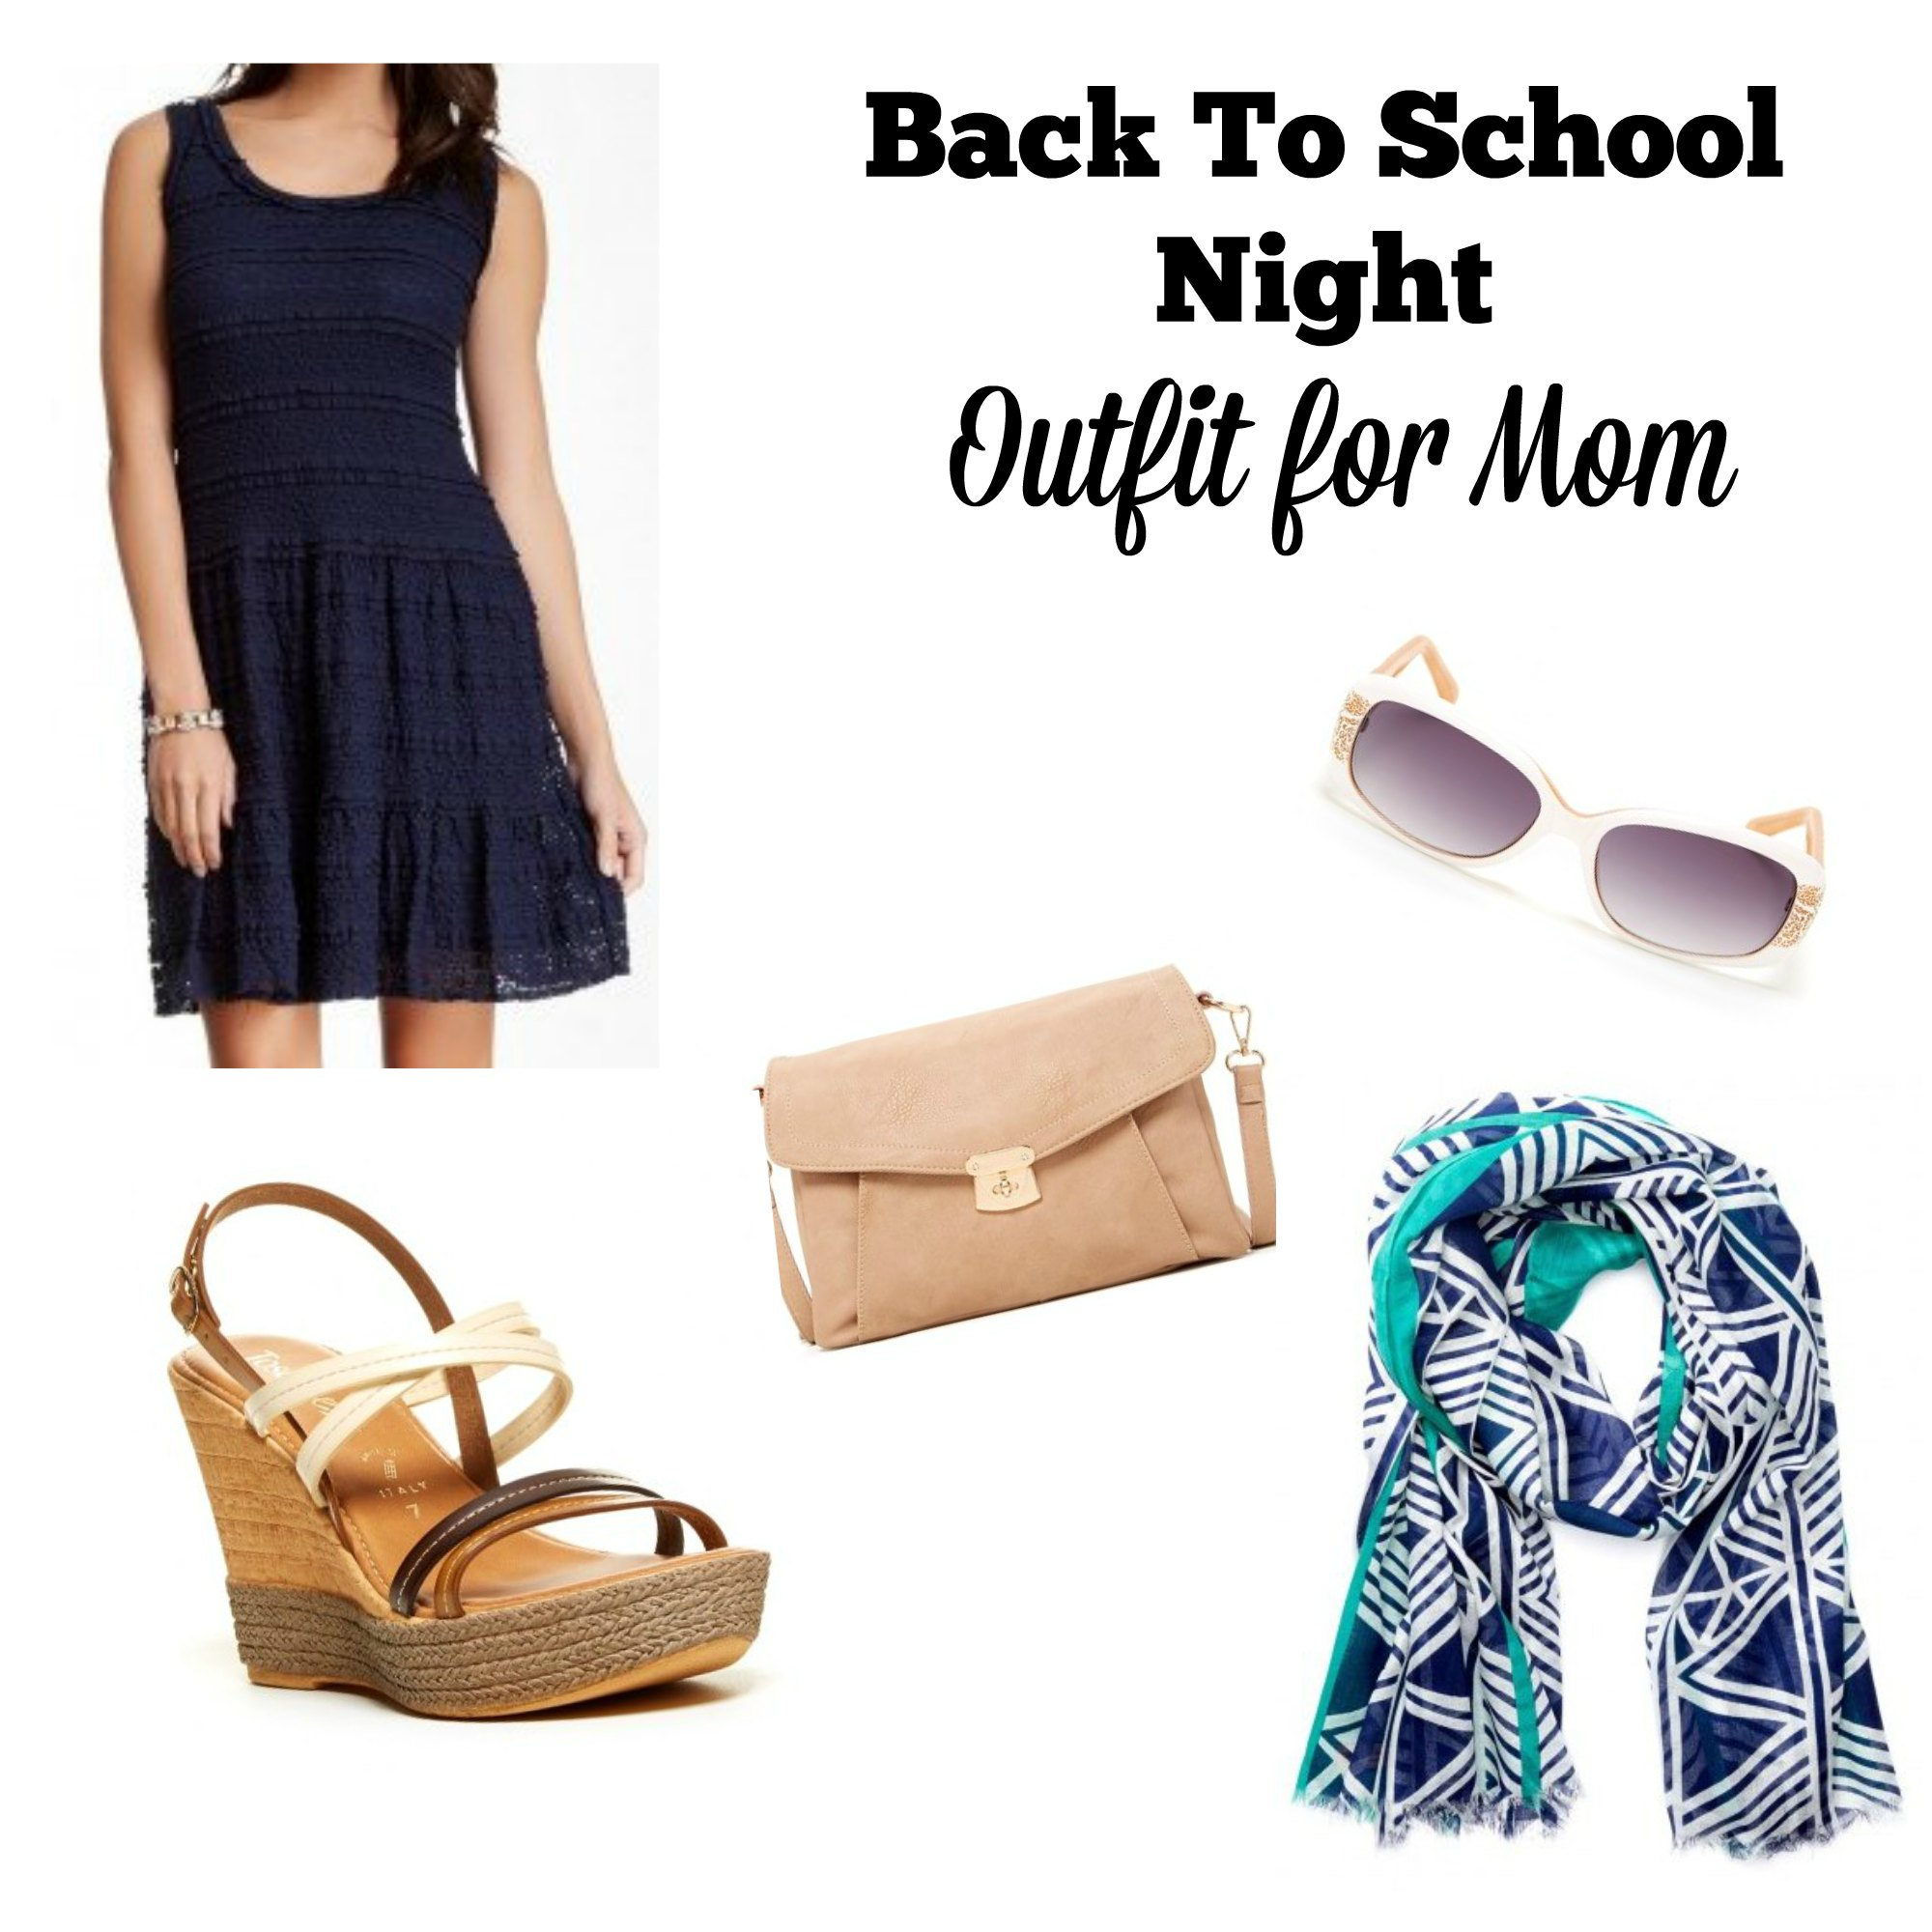 Back to school night outfit for mom